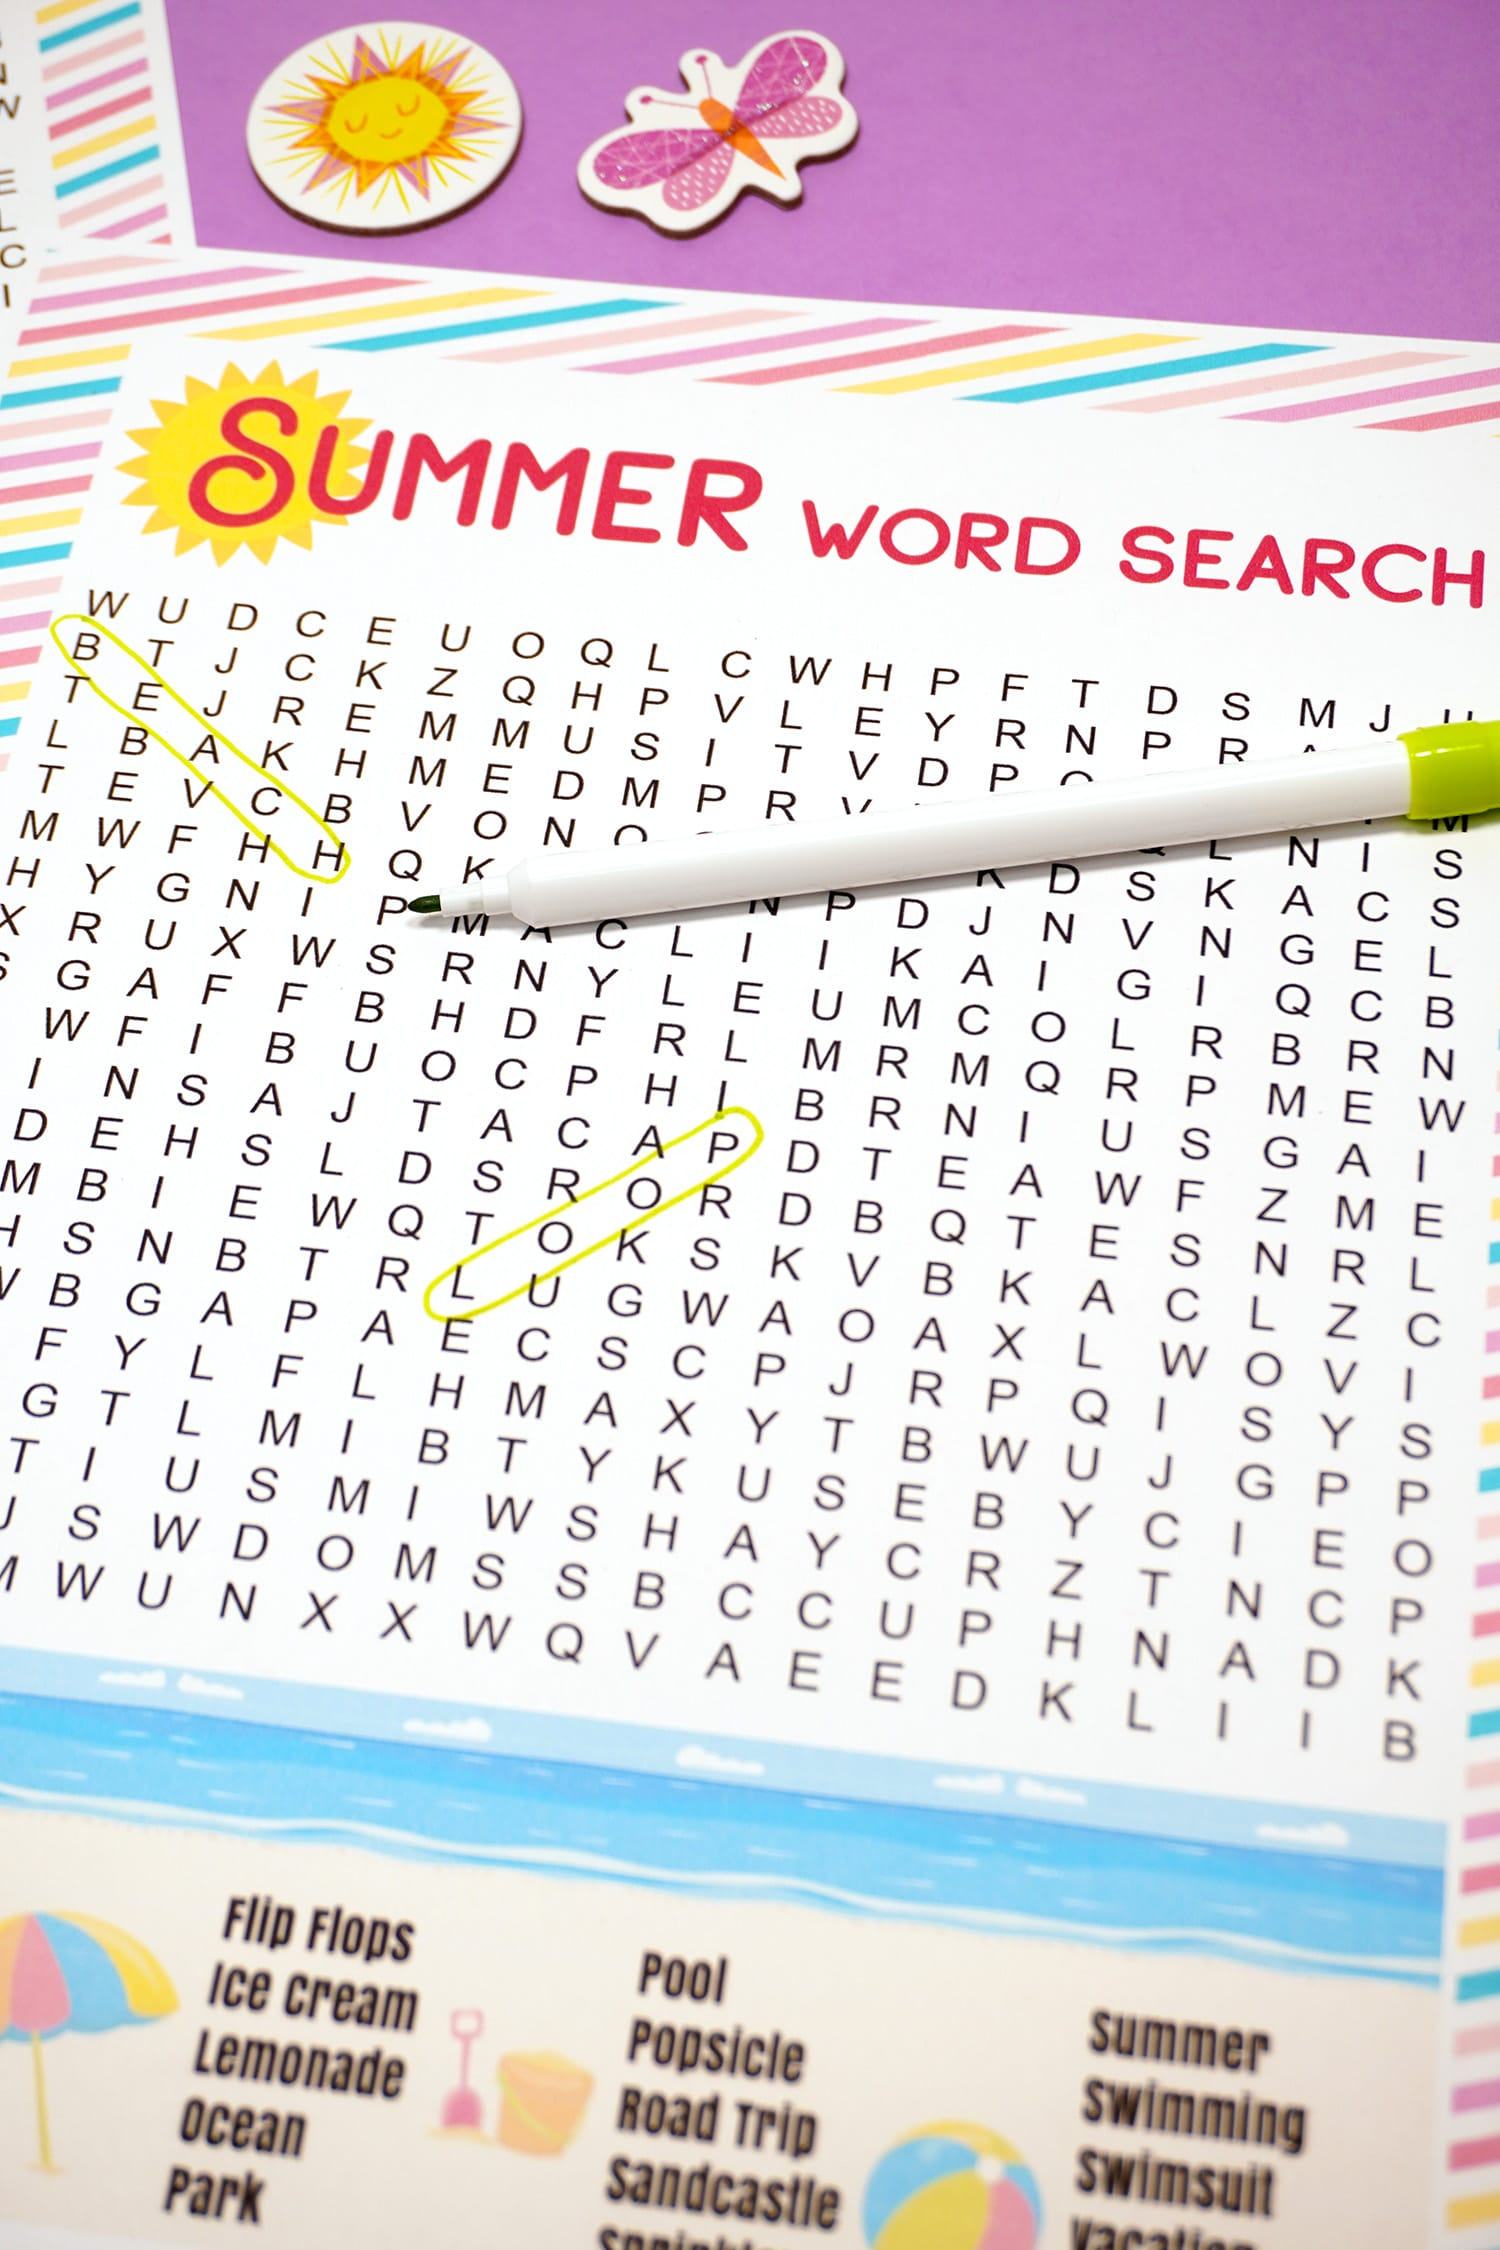 """Summer word search printable with """"Beach"""" and """"Pool"""" circled in green marker"""